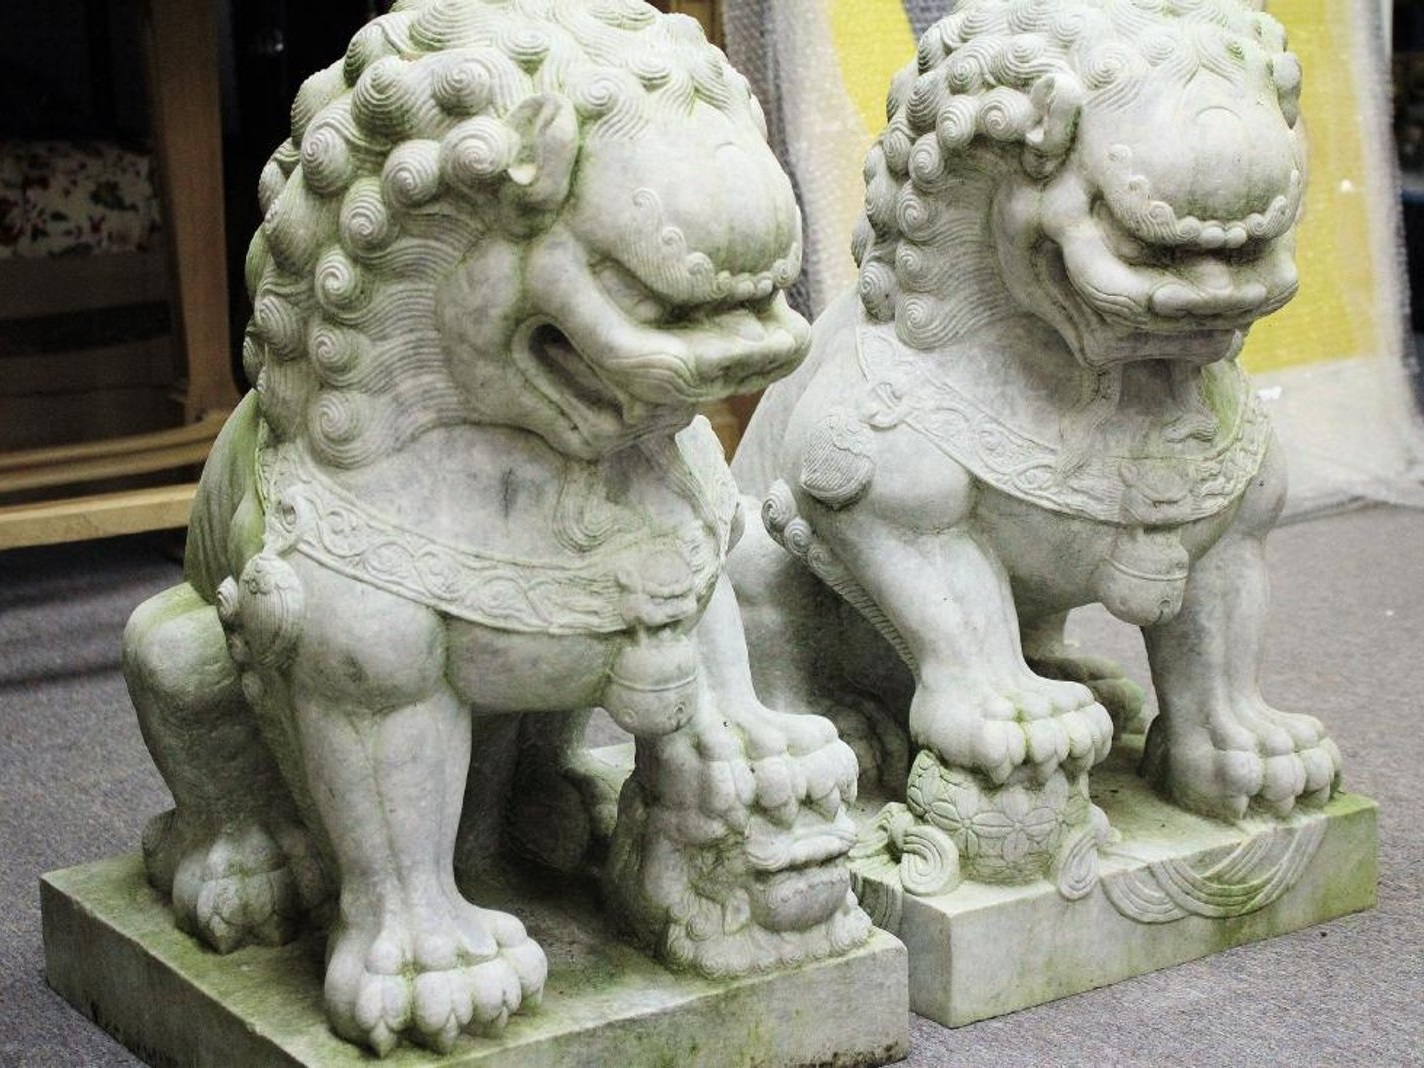 Pair Of Massive Marble Foo Lions On Plinths. Sold For $3,500